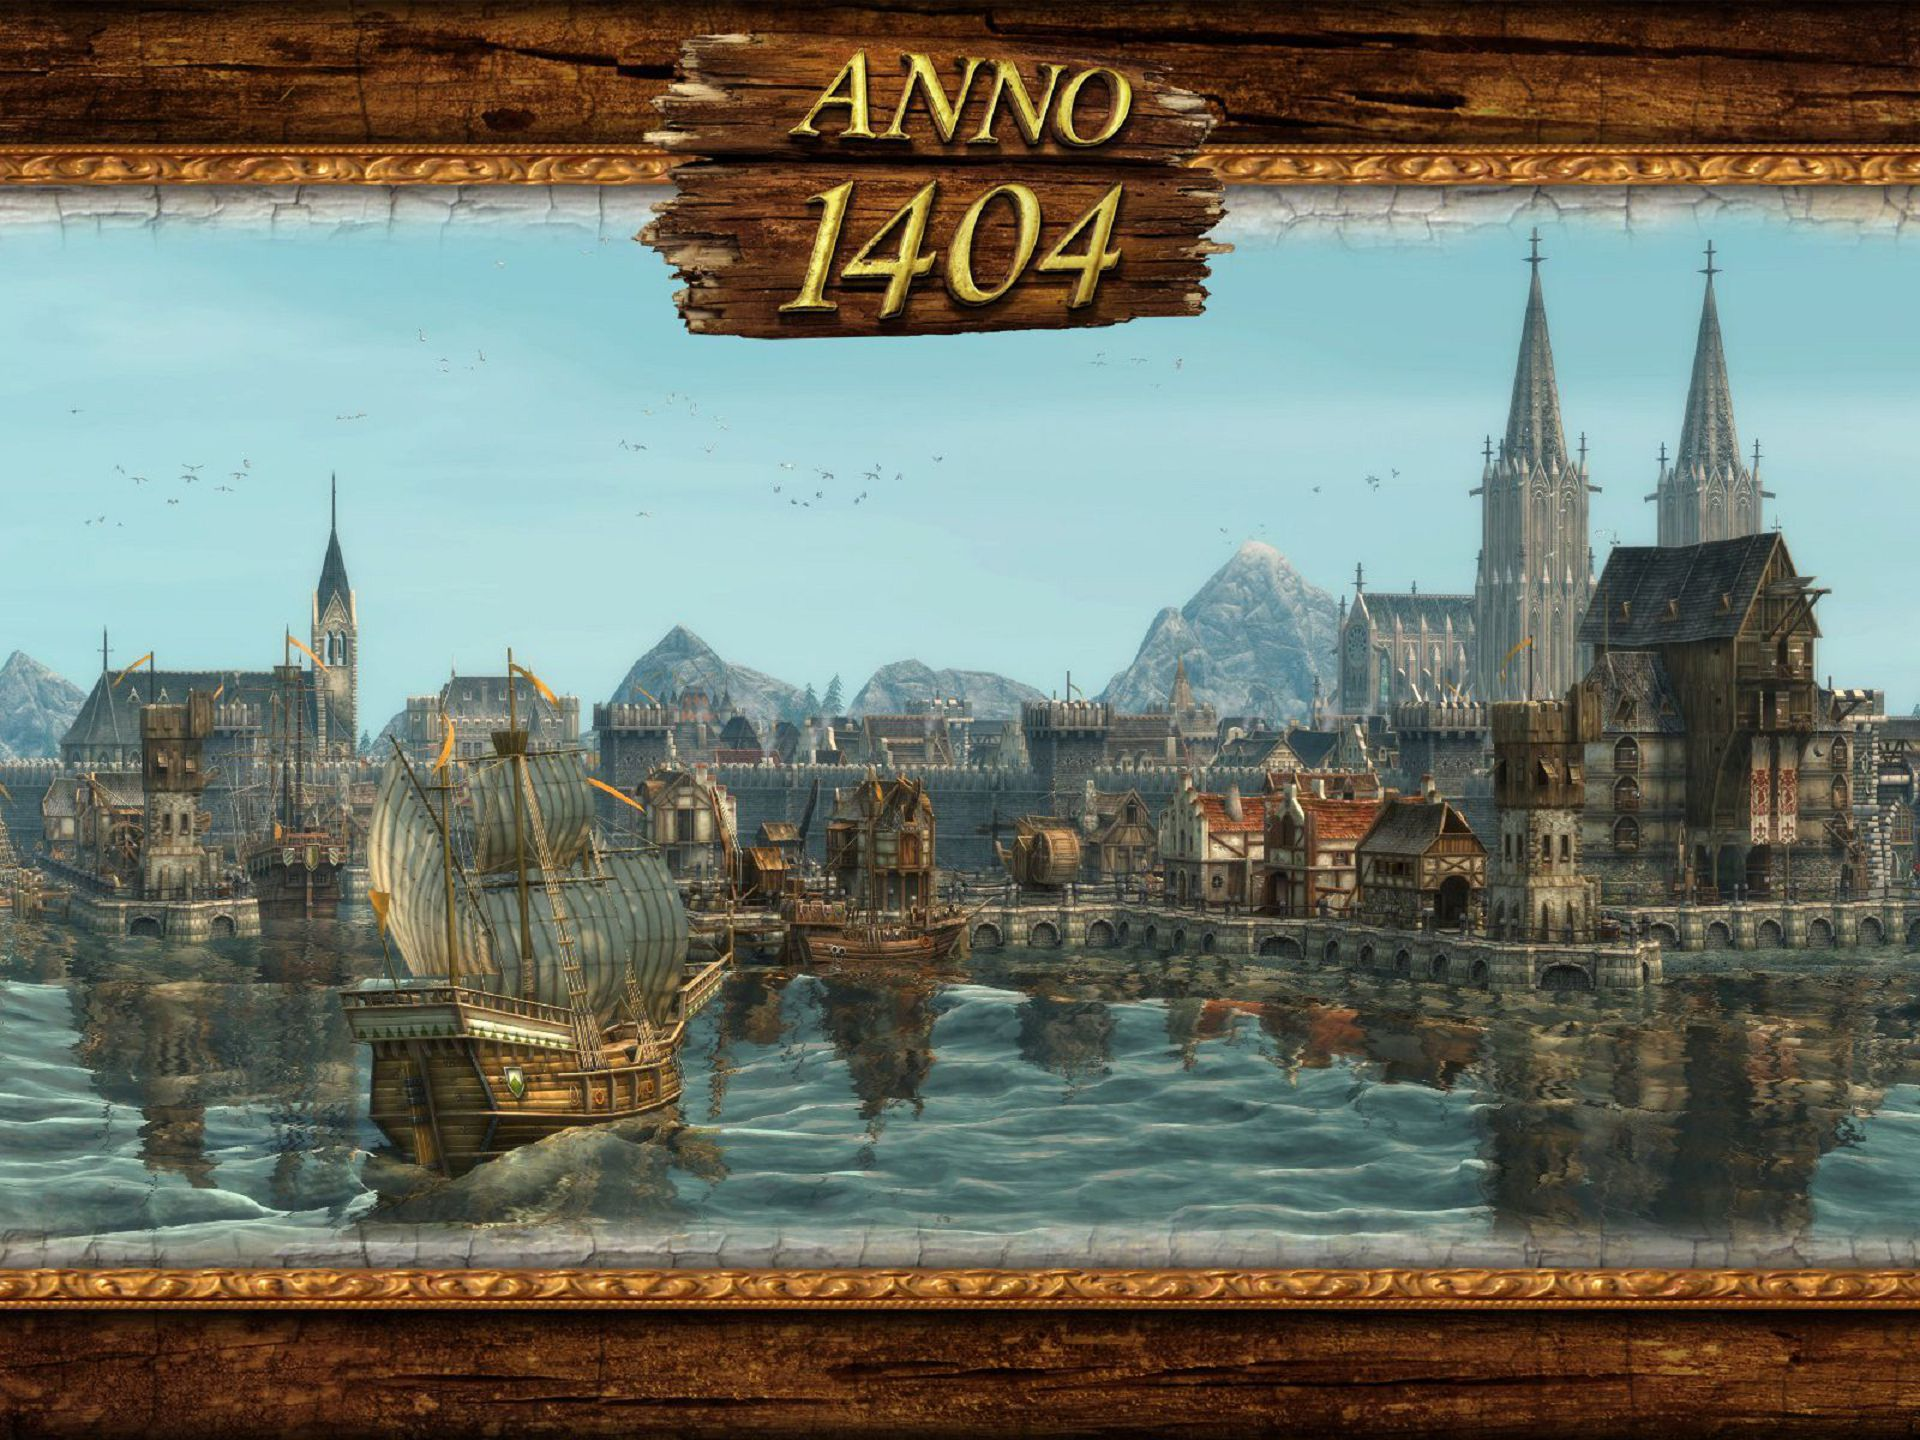 Anno 1404 Pictures